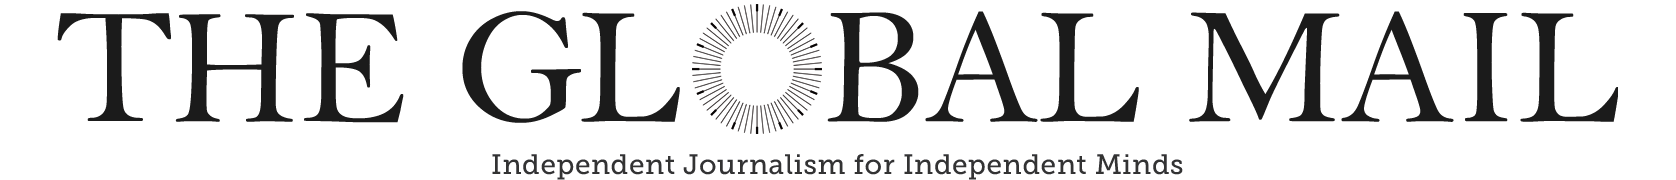 The Global Mail - Independent Journalism for Independent Minds